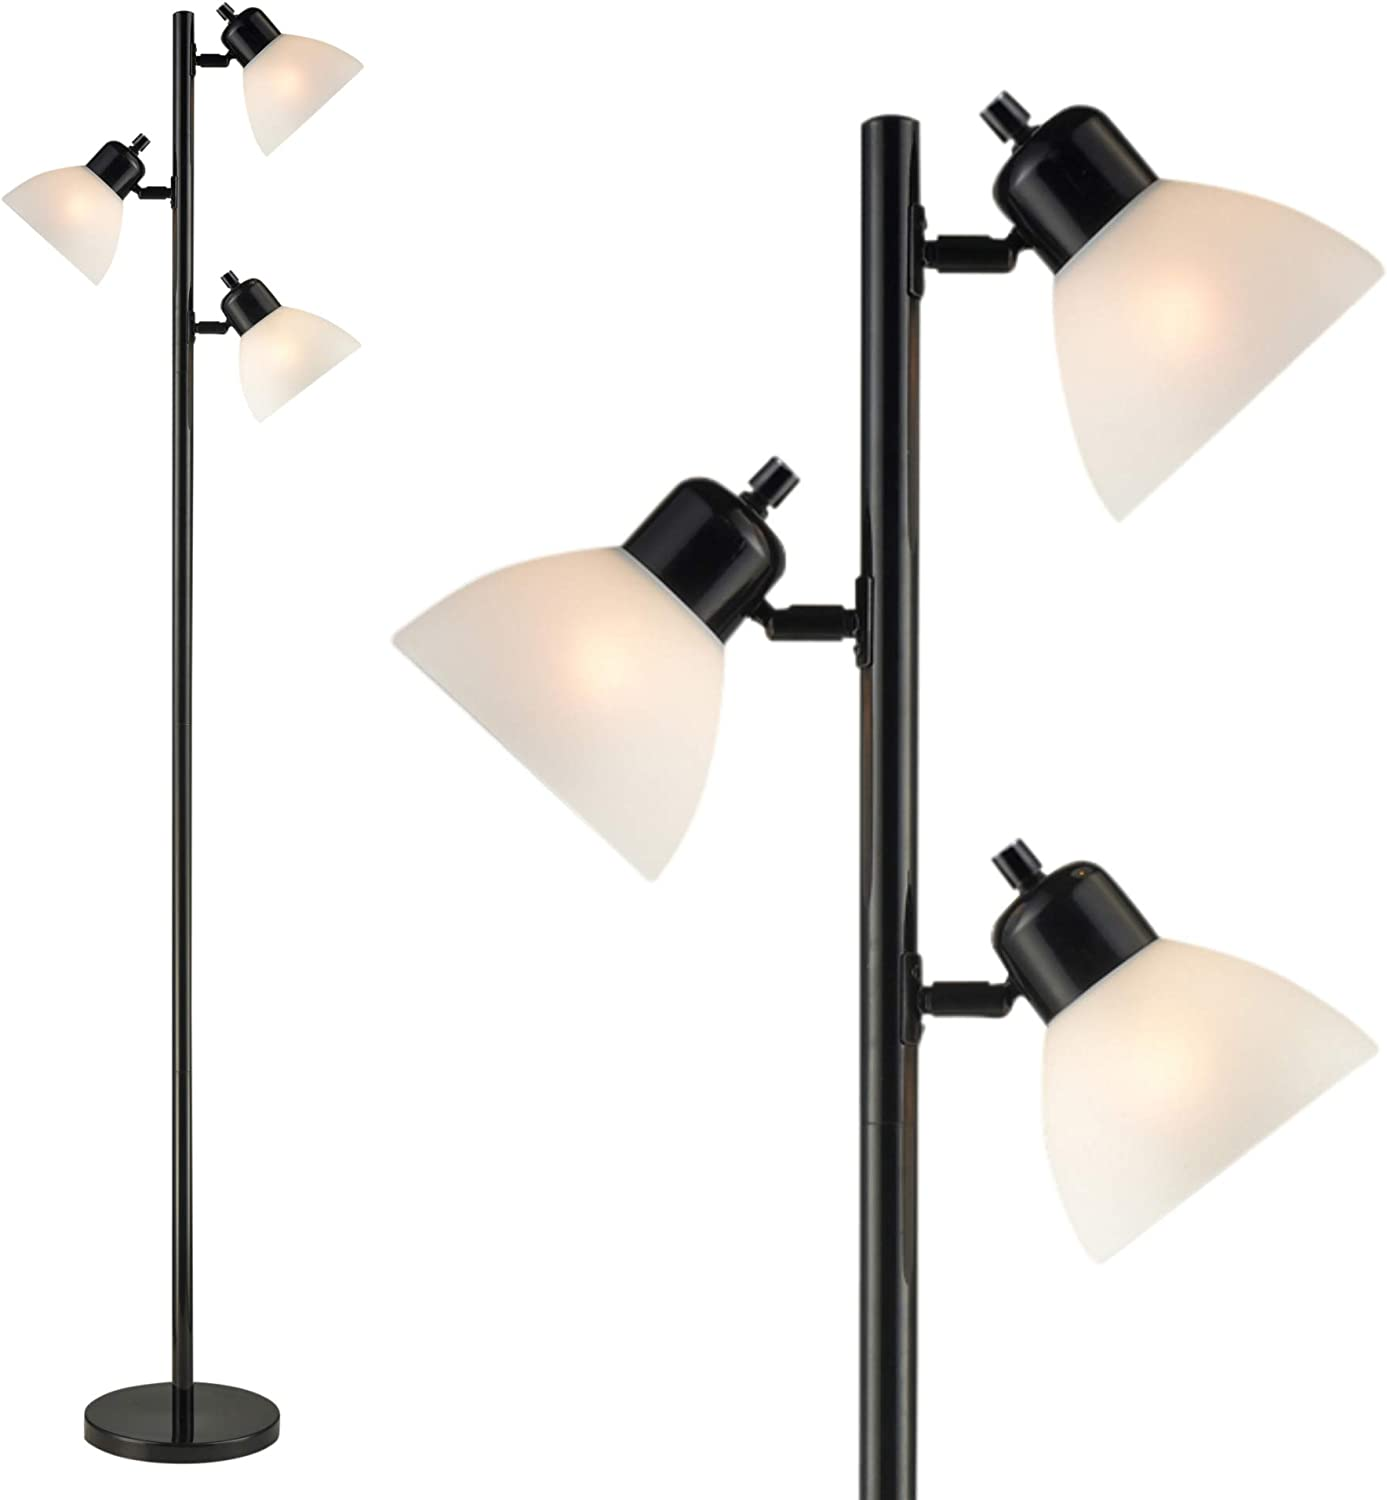 Dorm 17 Light Floor Lamp by Lightaccents - Tree Style Standing Pole Lamp  with Adjustable Lights – Floor Standing Pole Light – Tall Lamp Torchiere -